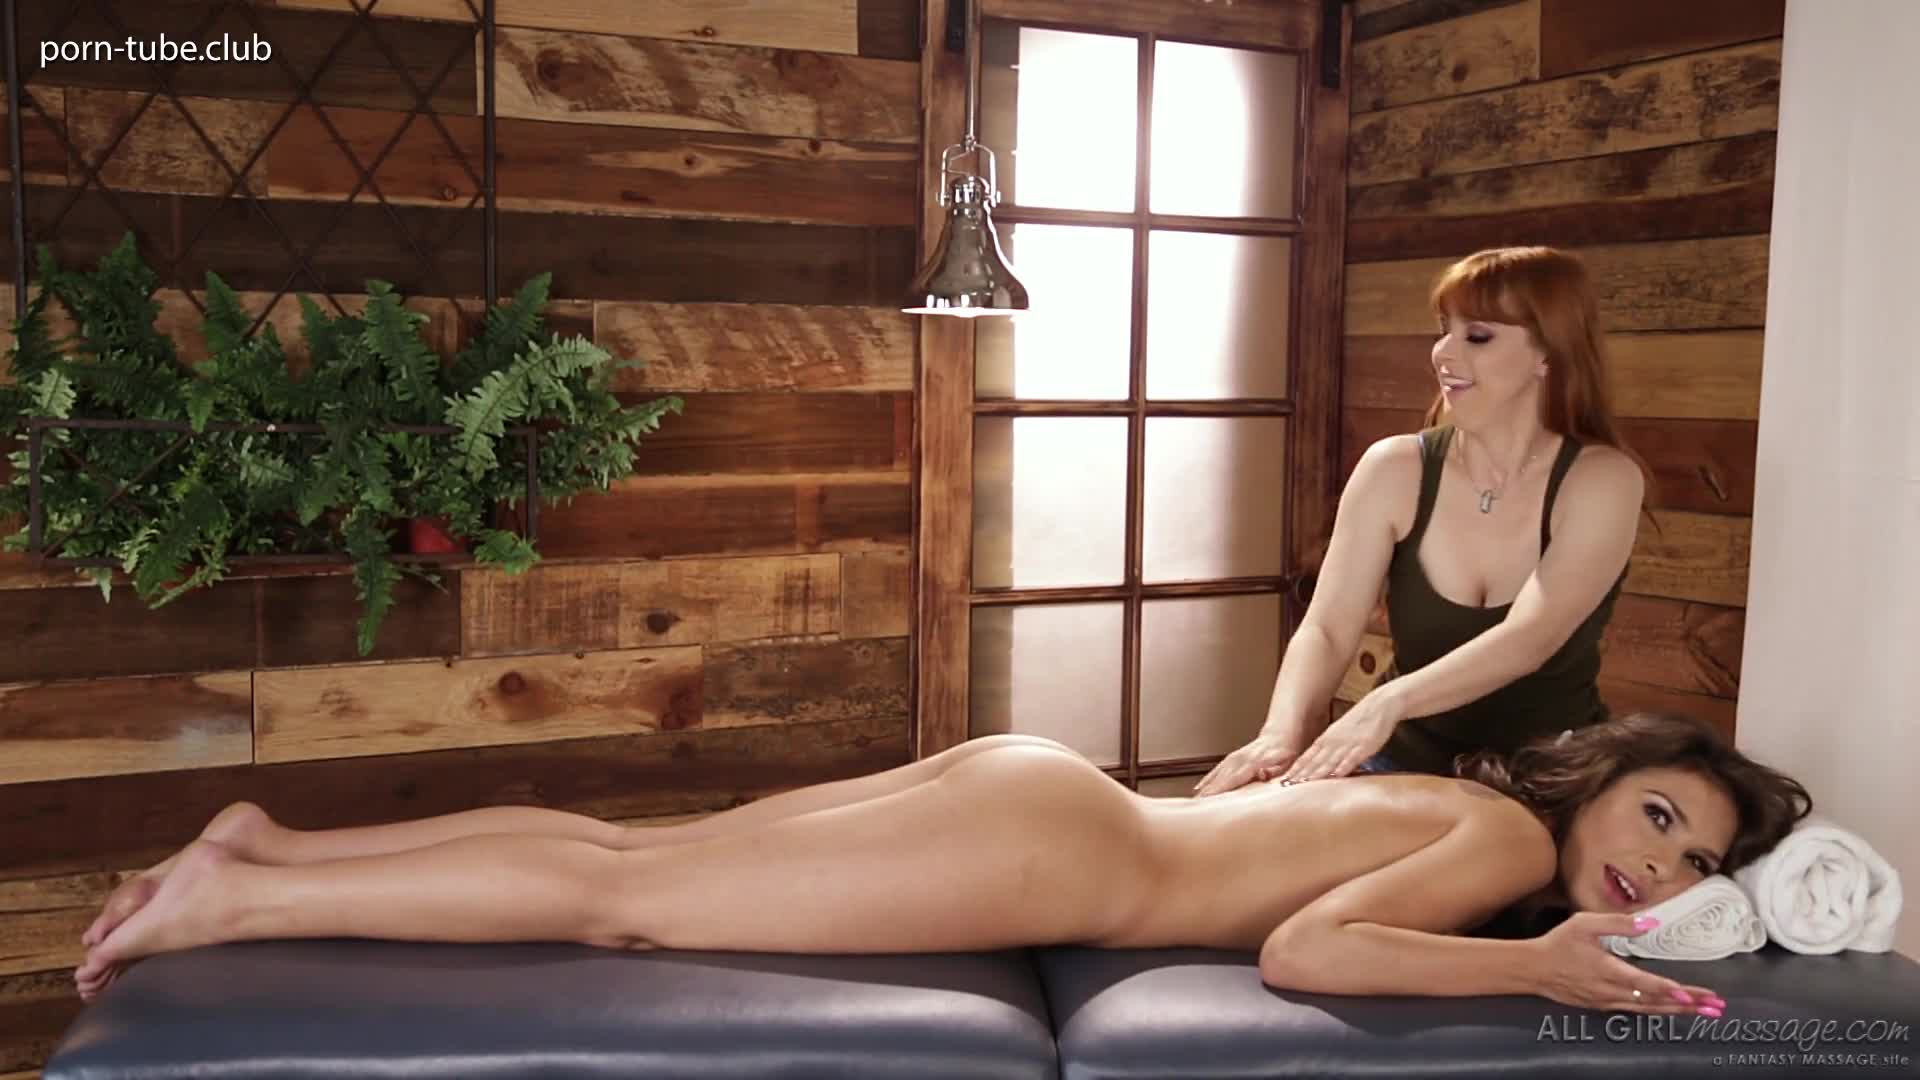 AllGirlMassage 17.06.05 Carmen Caliente And Penny Pax After Hours Massage